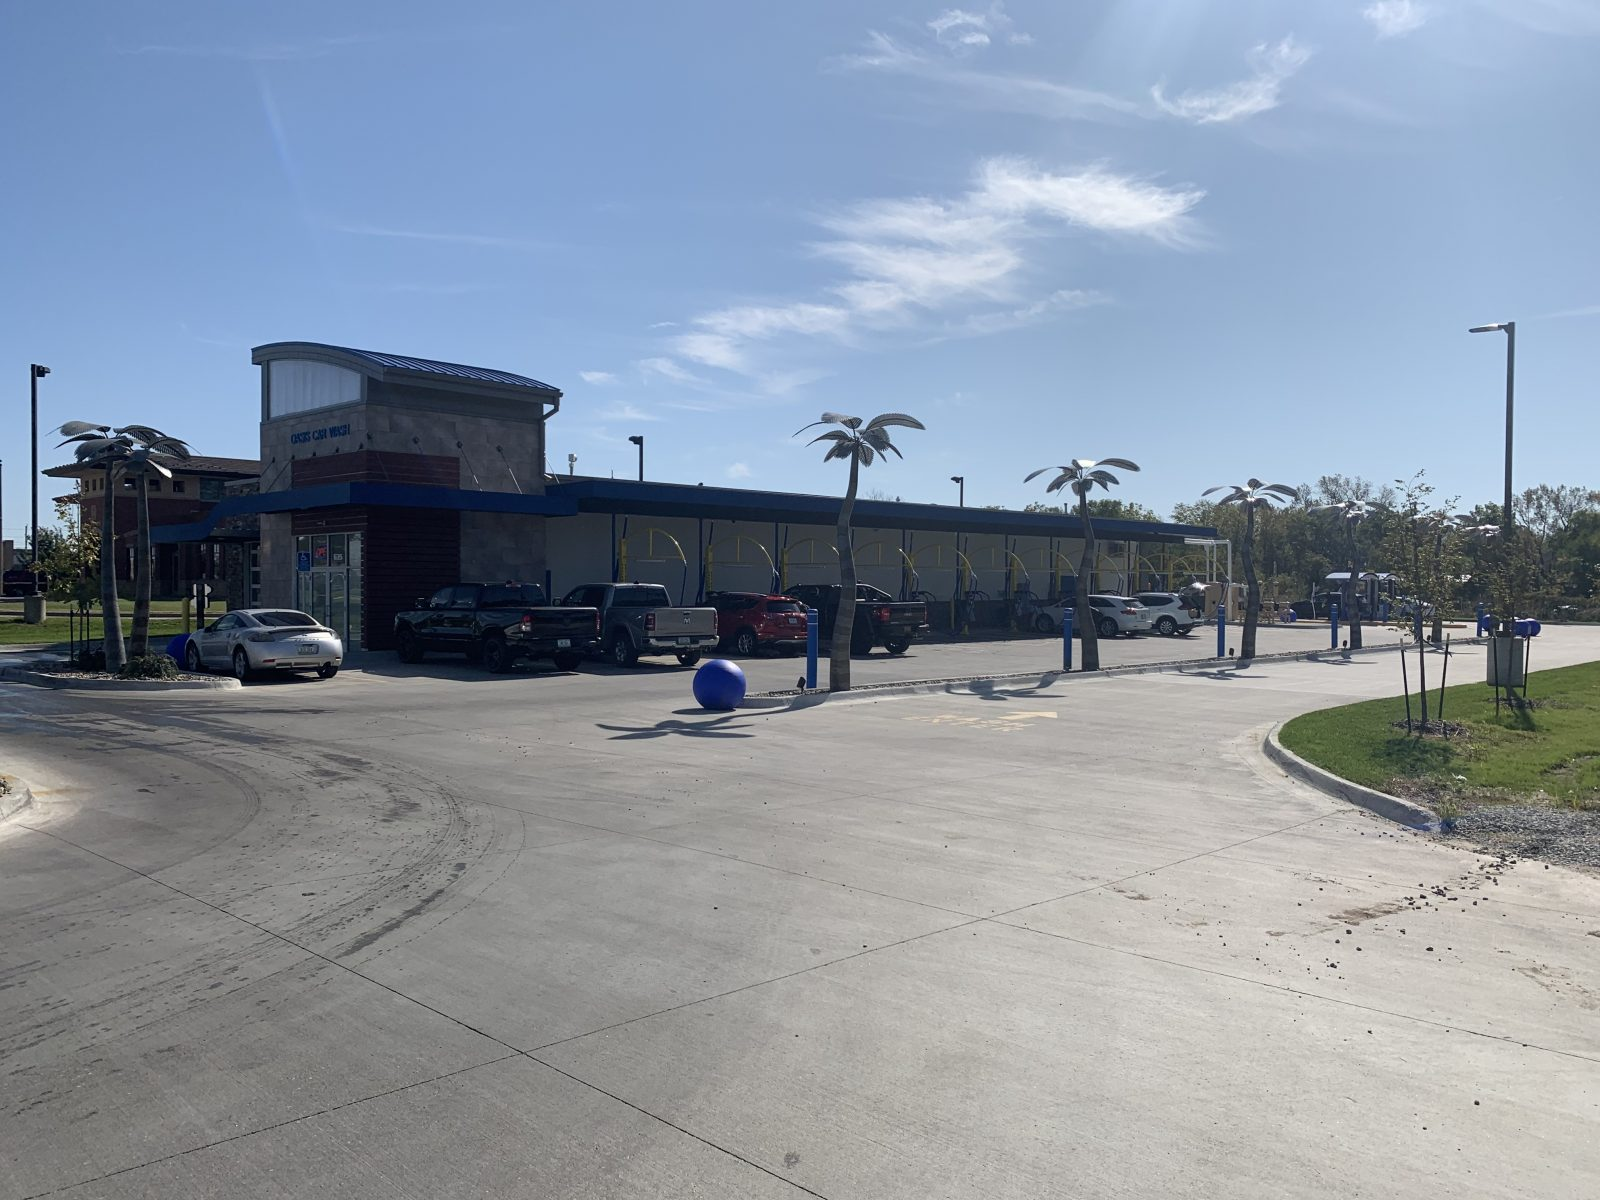 Cars are lined up at Oasis car wash on a beautiful day